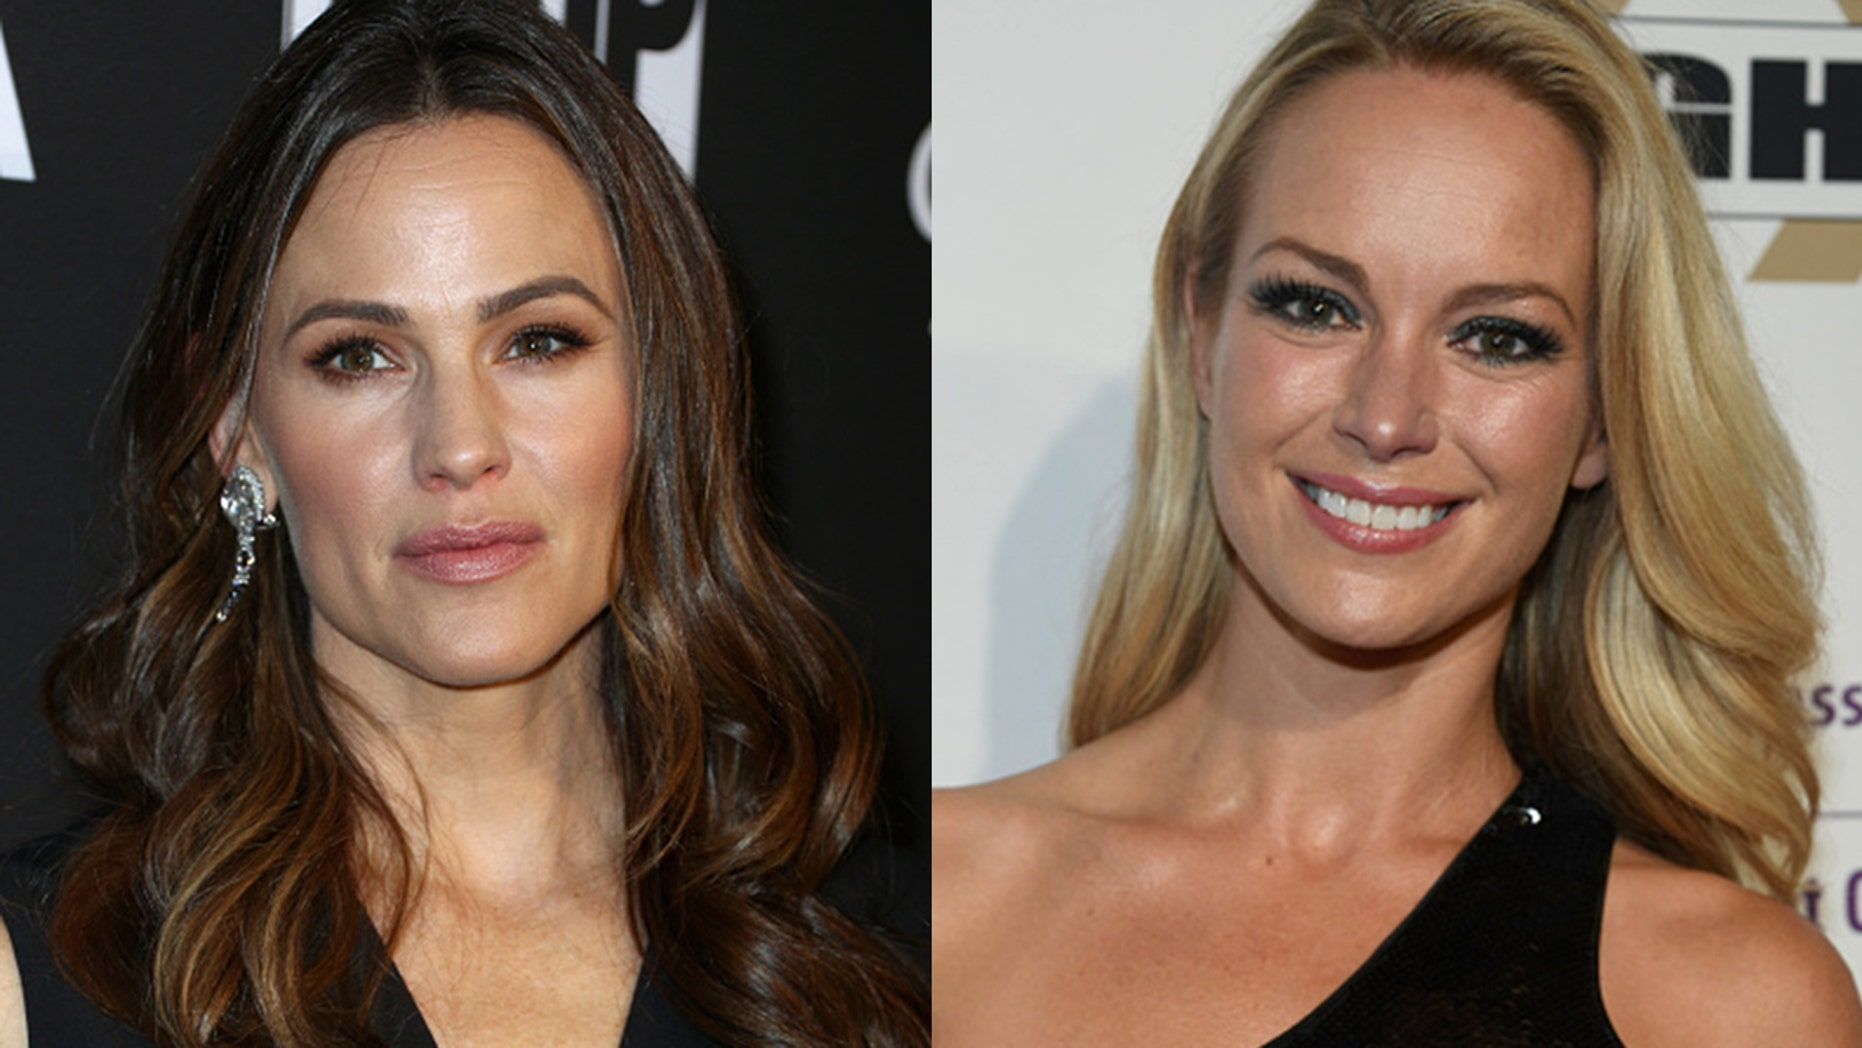 Jennifer Garner's new boyfriend John Miller is said to have some